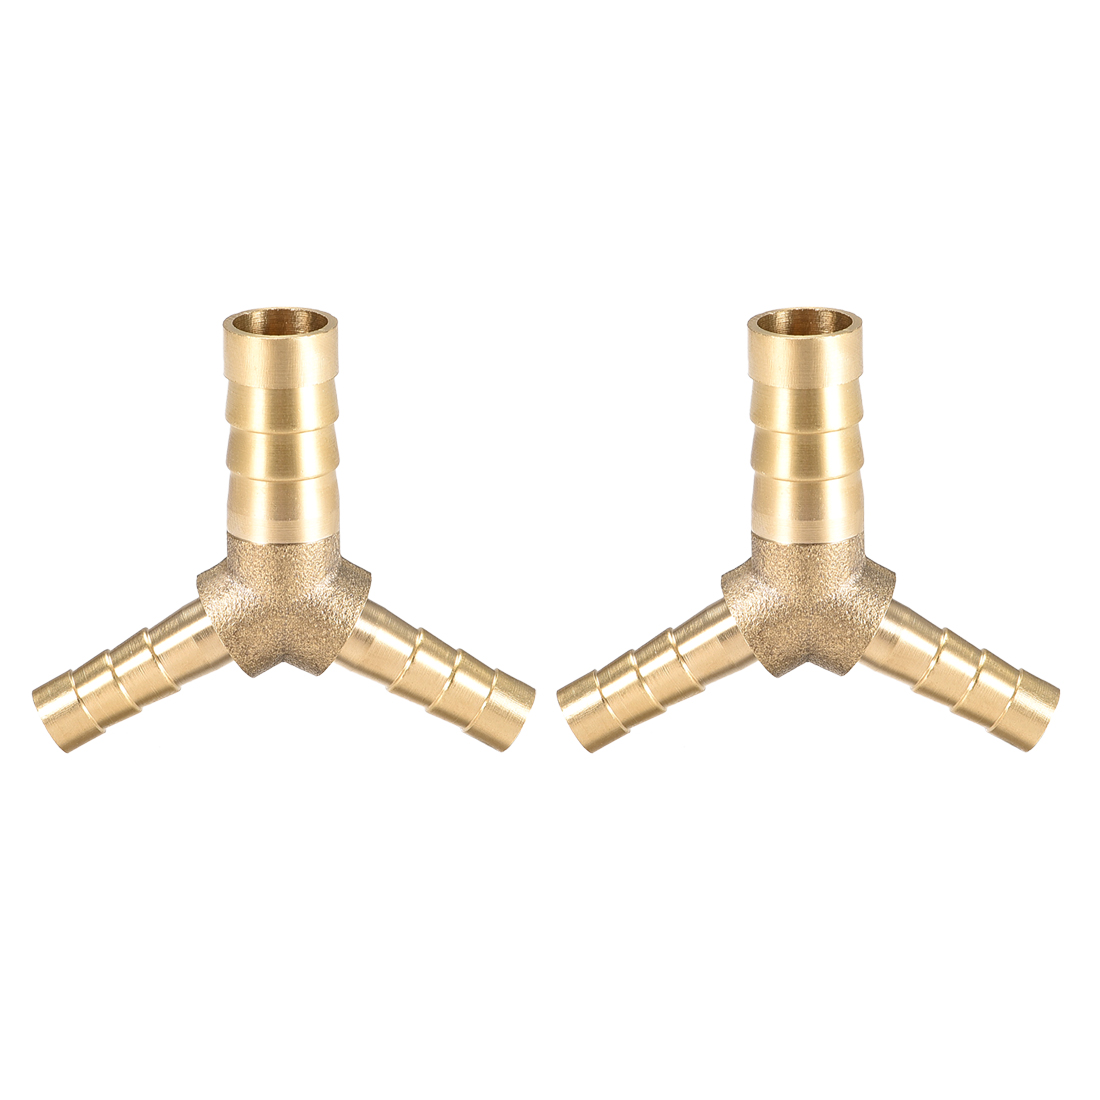 10mm x 6mm x 6mm Hose ID Reducer Barb Fitting Y-Shaped 3 Way Tee Adapter 2pcs